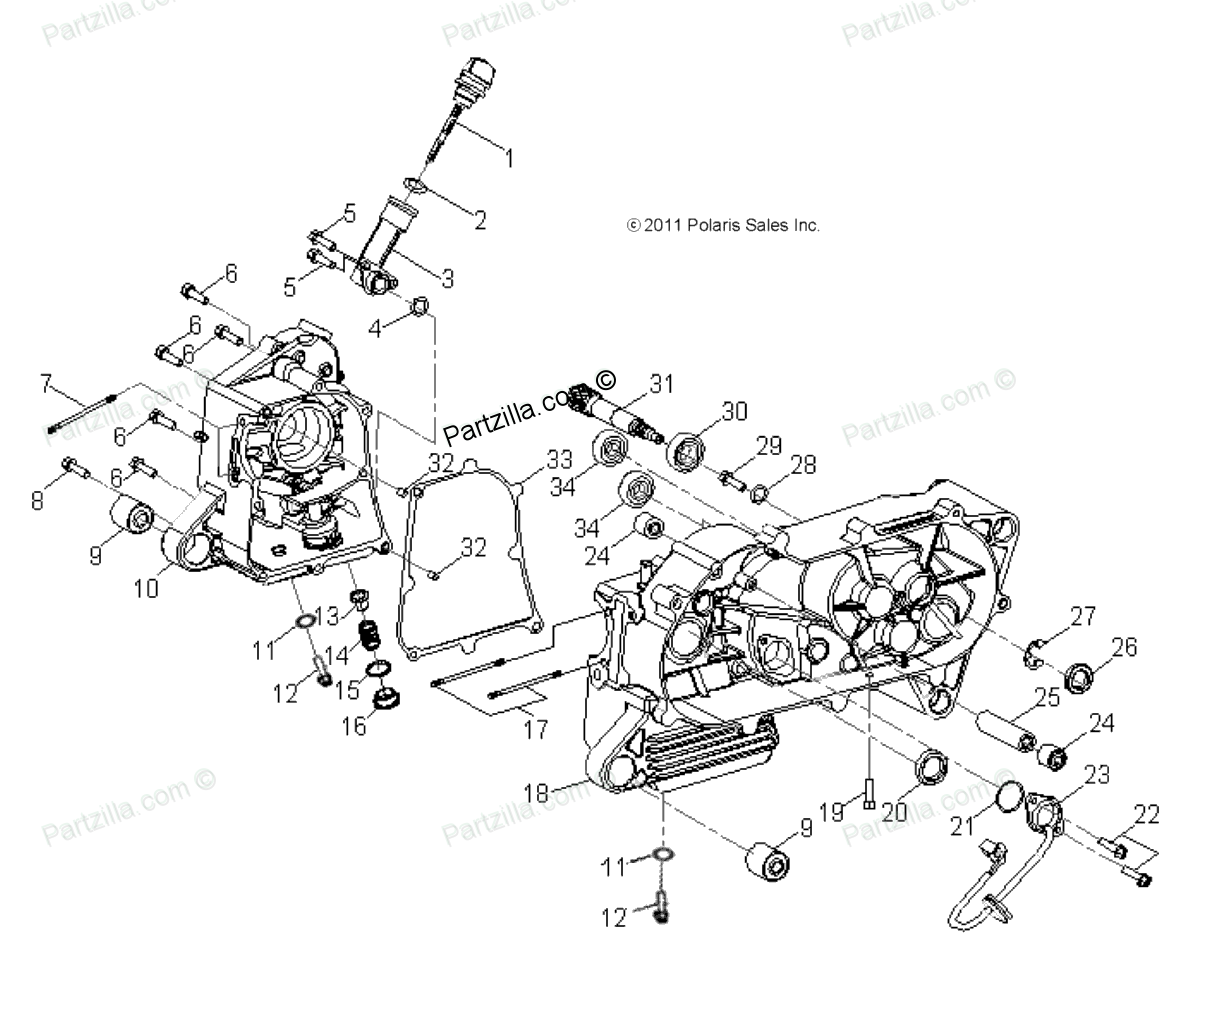 hight resolution of polaris outlaw 50 idle rev limit wiring diagram atvconnection 2011 outlaw 50 wiring diagram